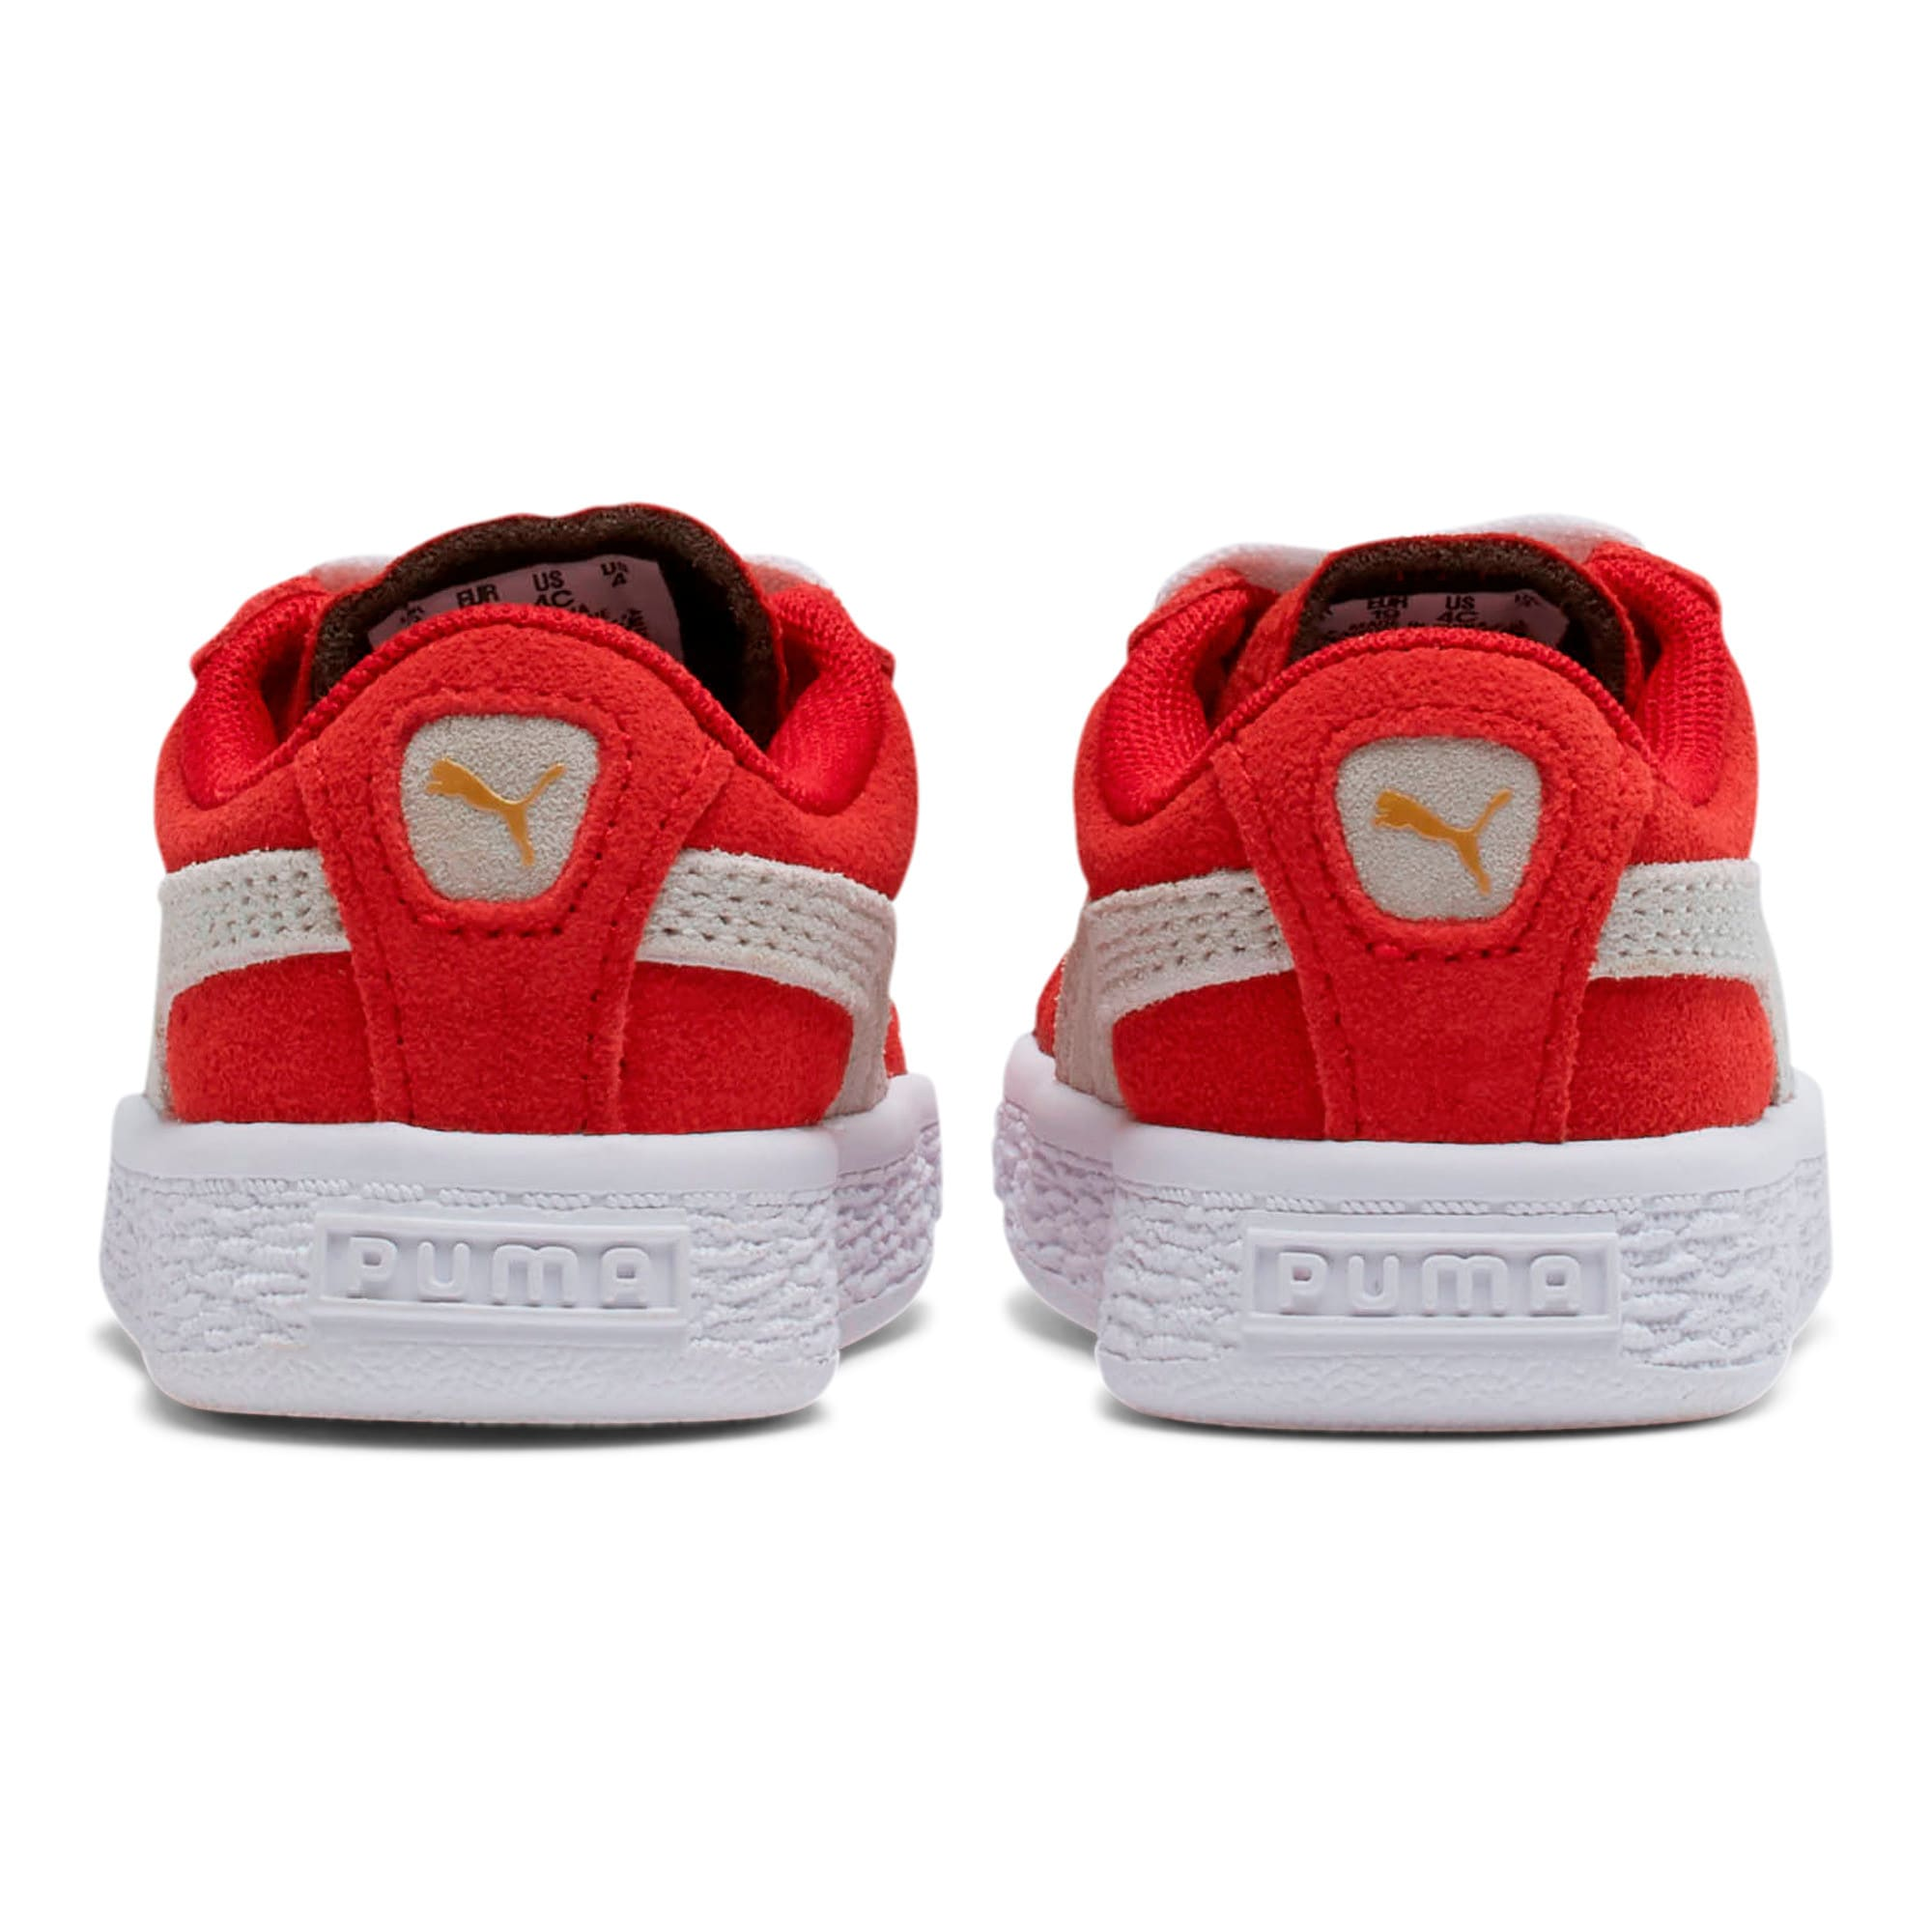 Miniatura 4 de Zapatos Puma Suede para bebés, high risk red-white, mediano